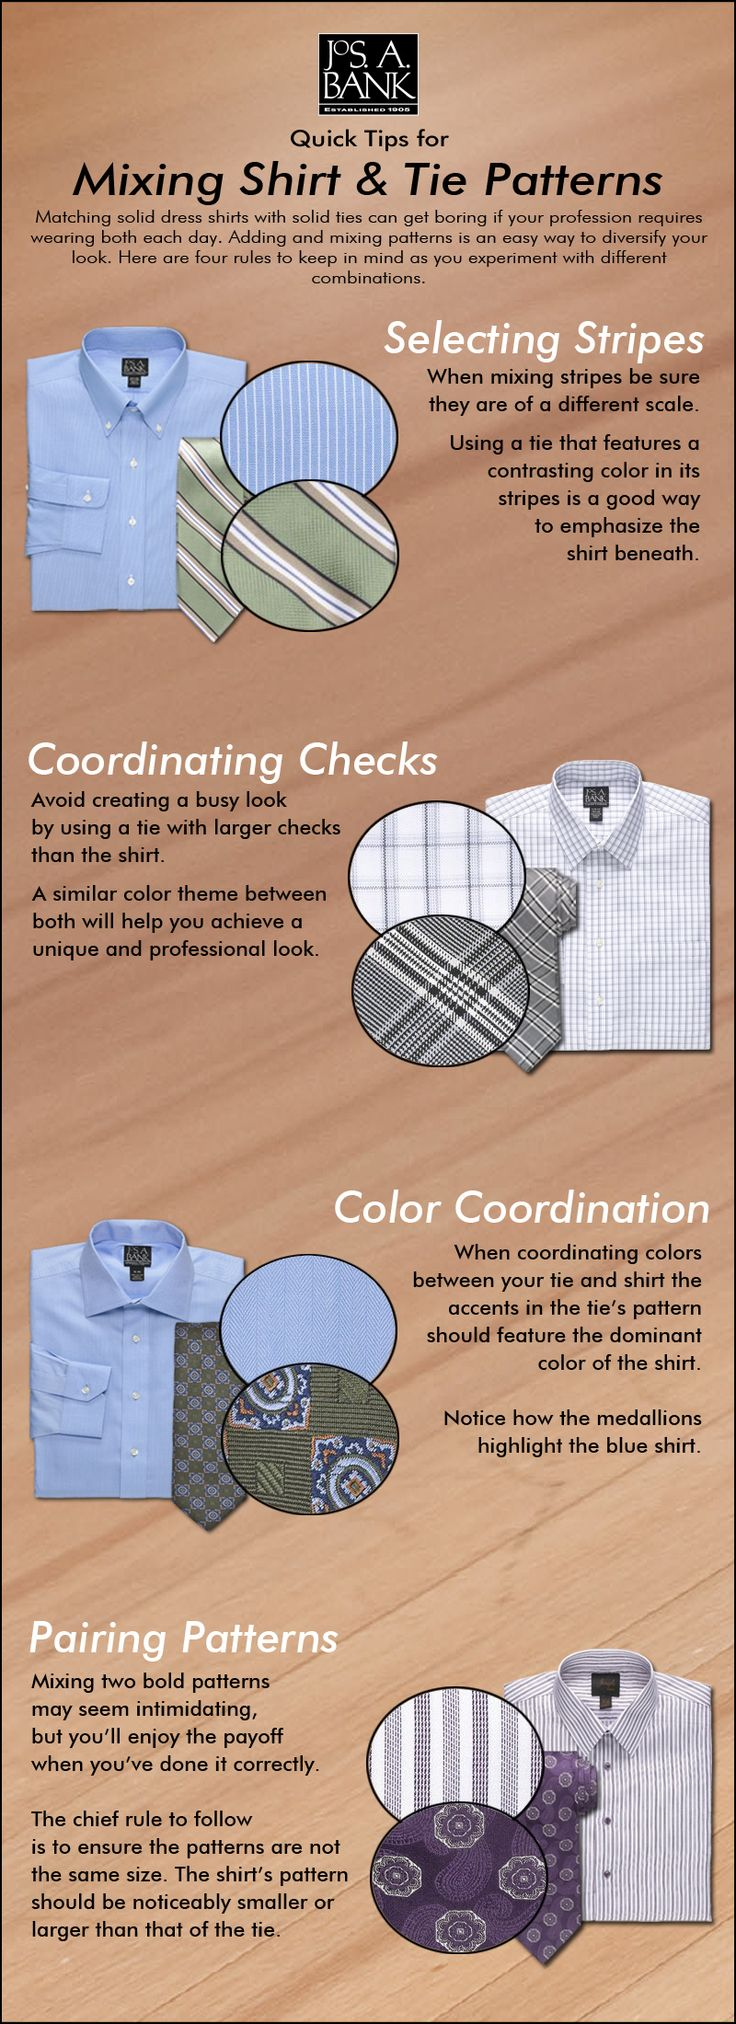 Business casual doesn't require a tie, but if you feel like wearing one here are a few tips!